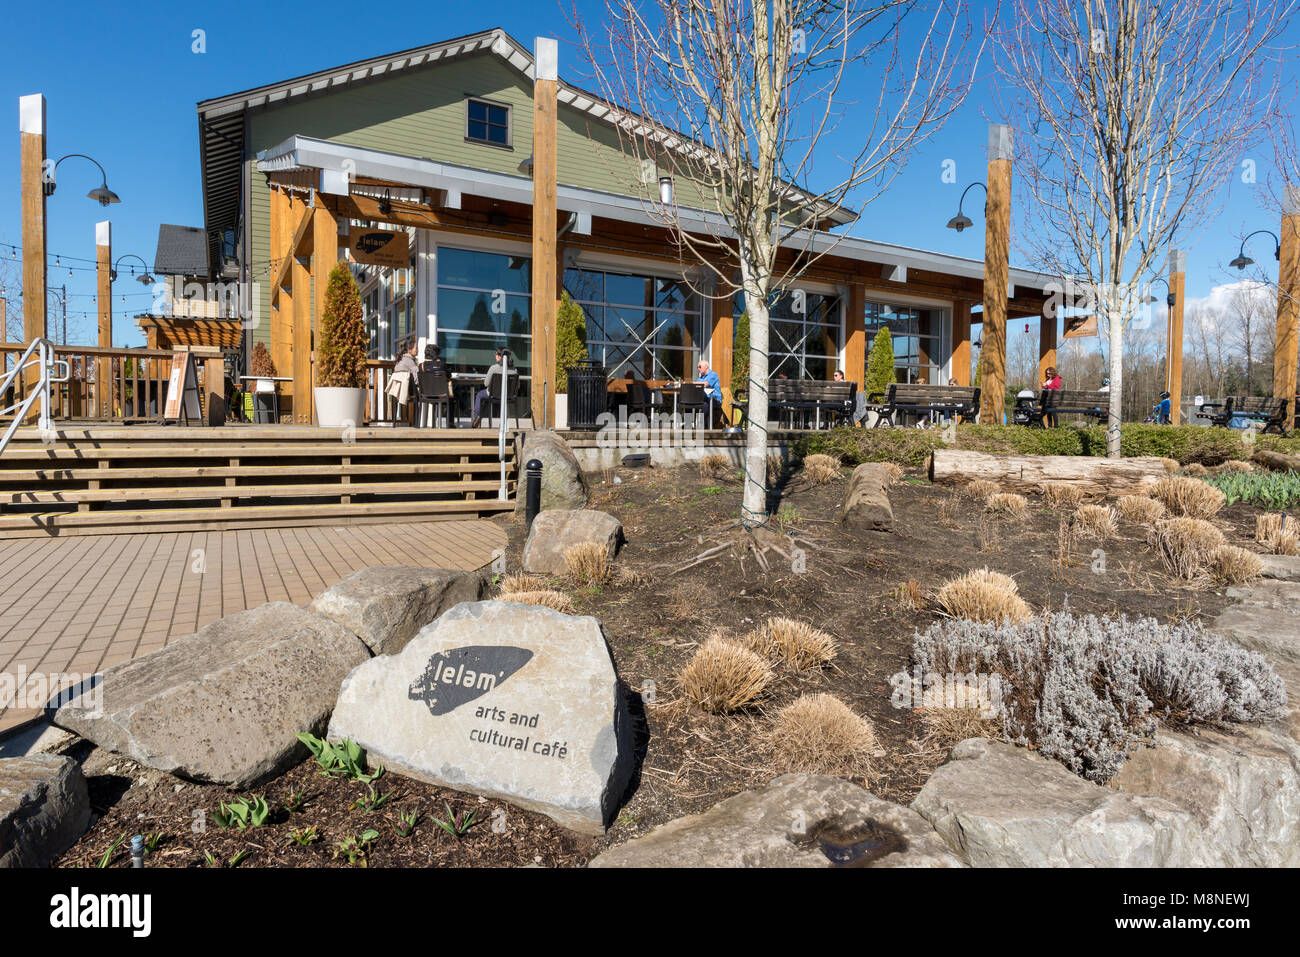 First Nations owned Lelem Arts & Cultural Cafe in Fort Langley, British Columbia. - Stock Image